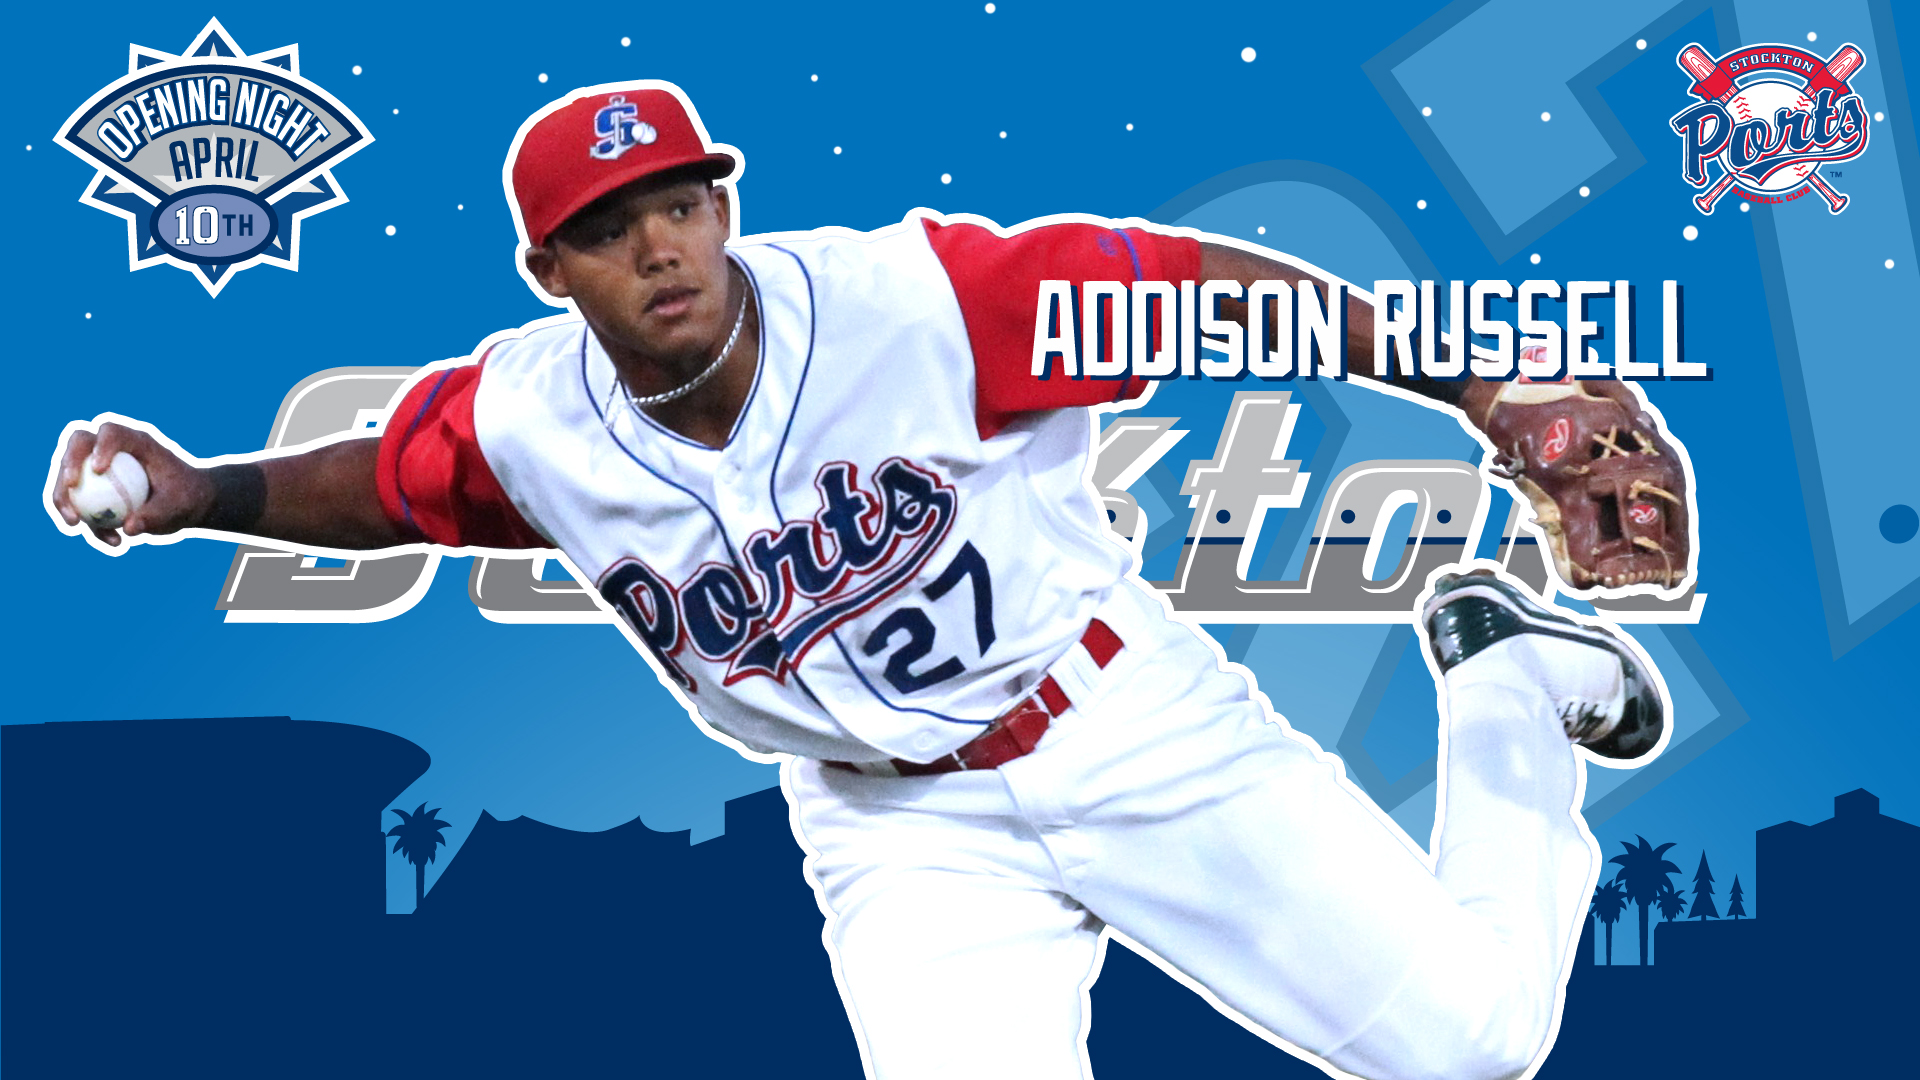 1920x1080 - Addison Russell Wallpapers 8